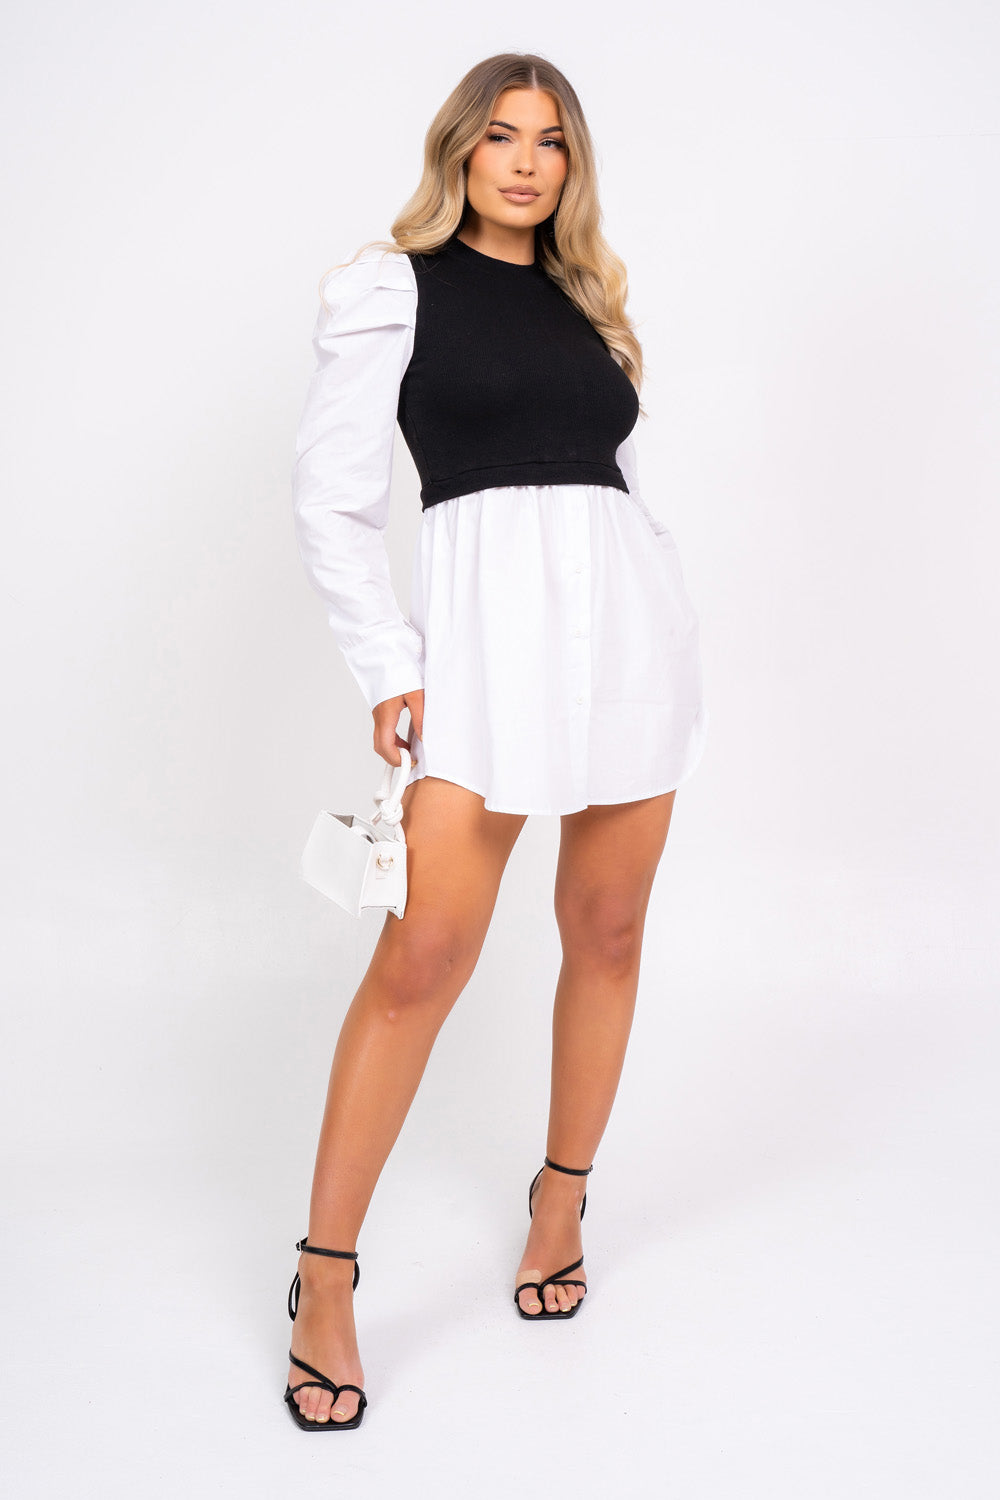 Best Behavior Overlay White and Black Puff Sleeve Shirt Dress